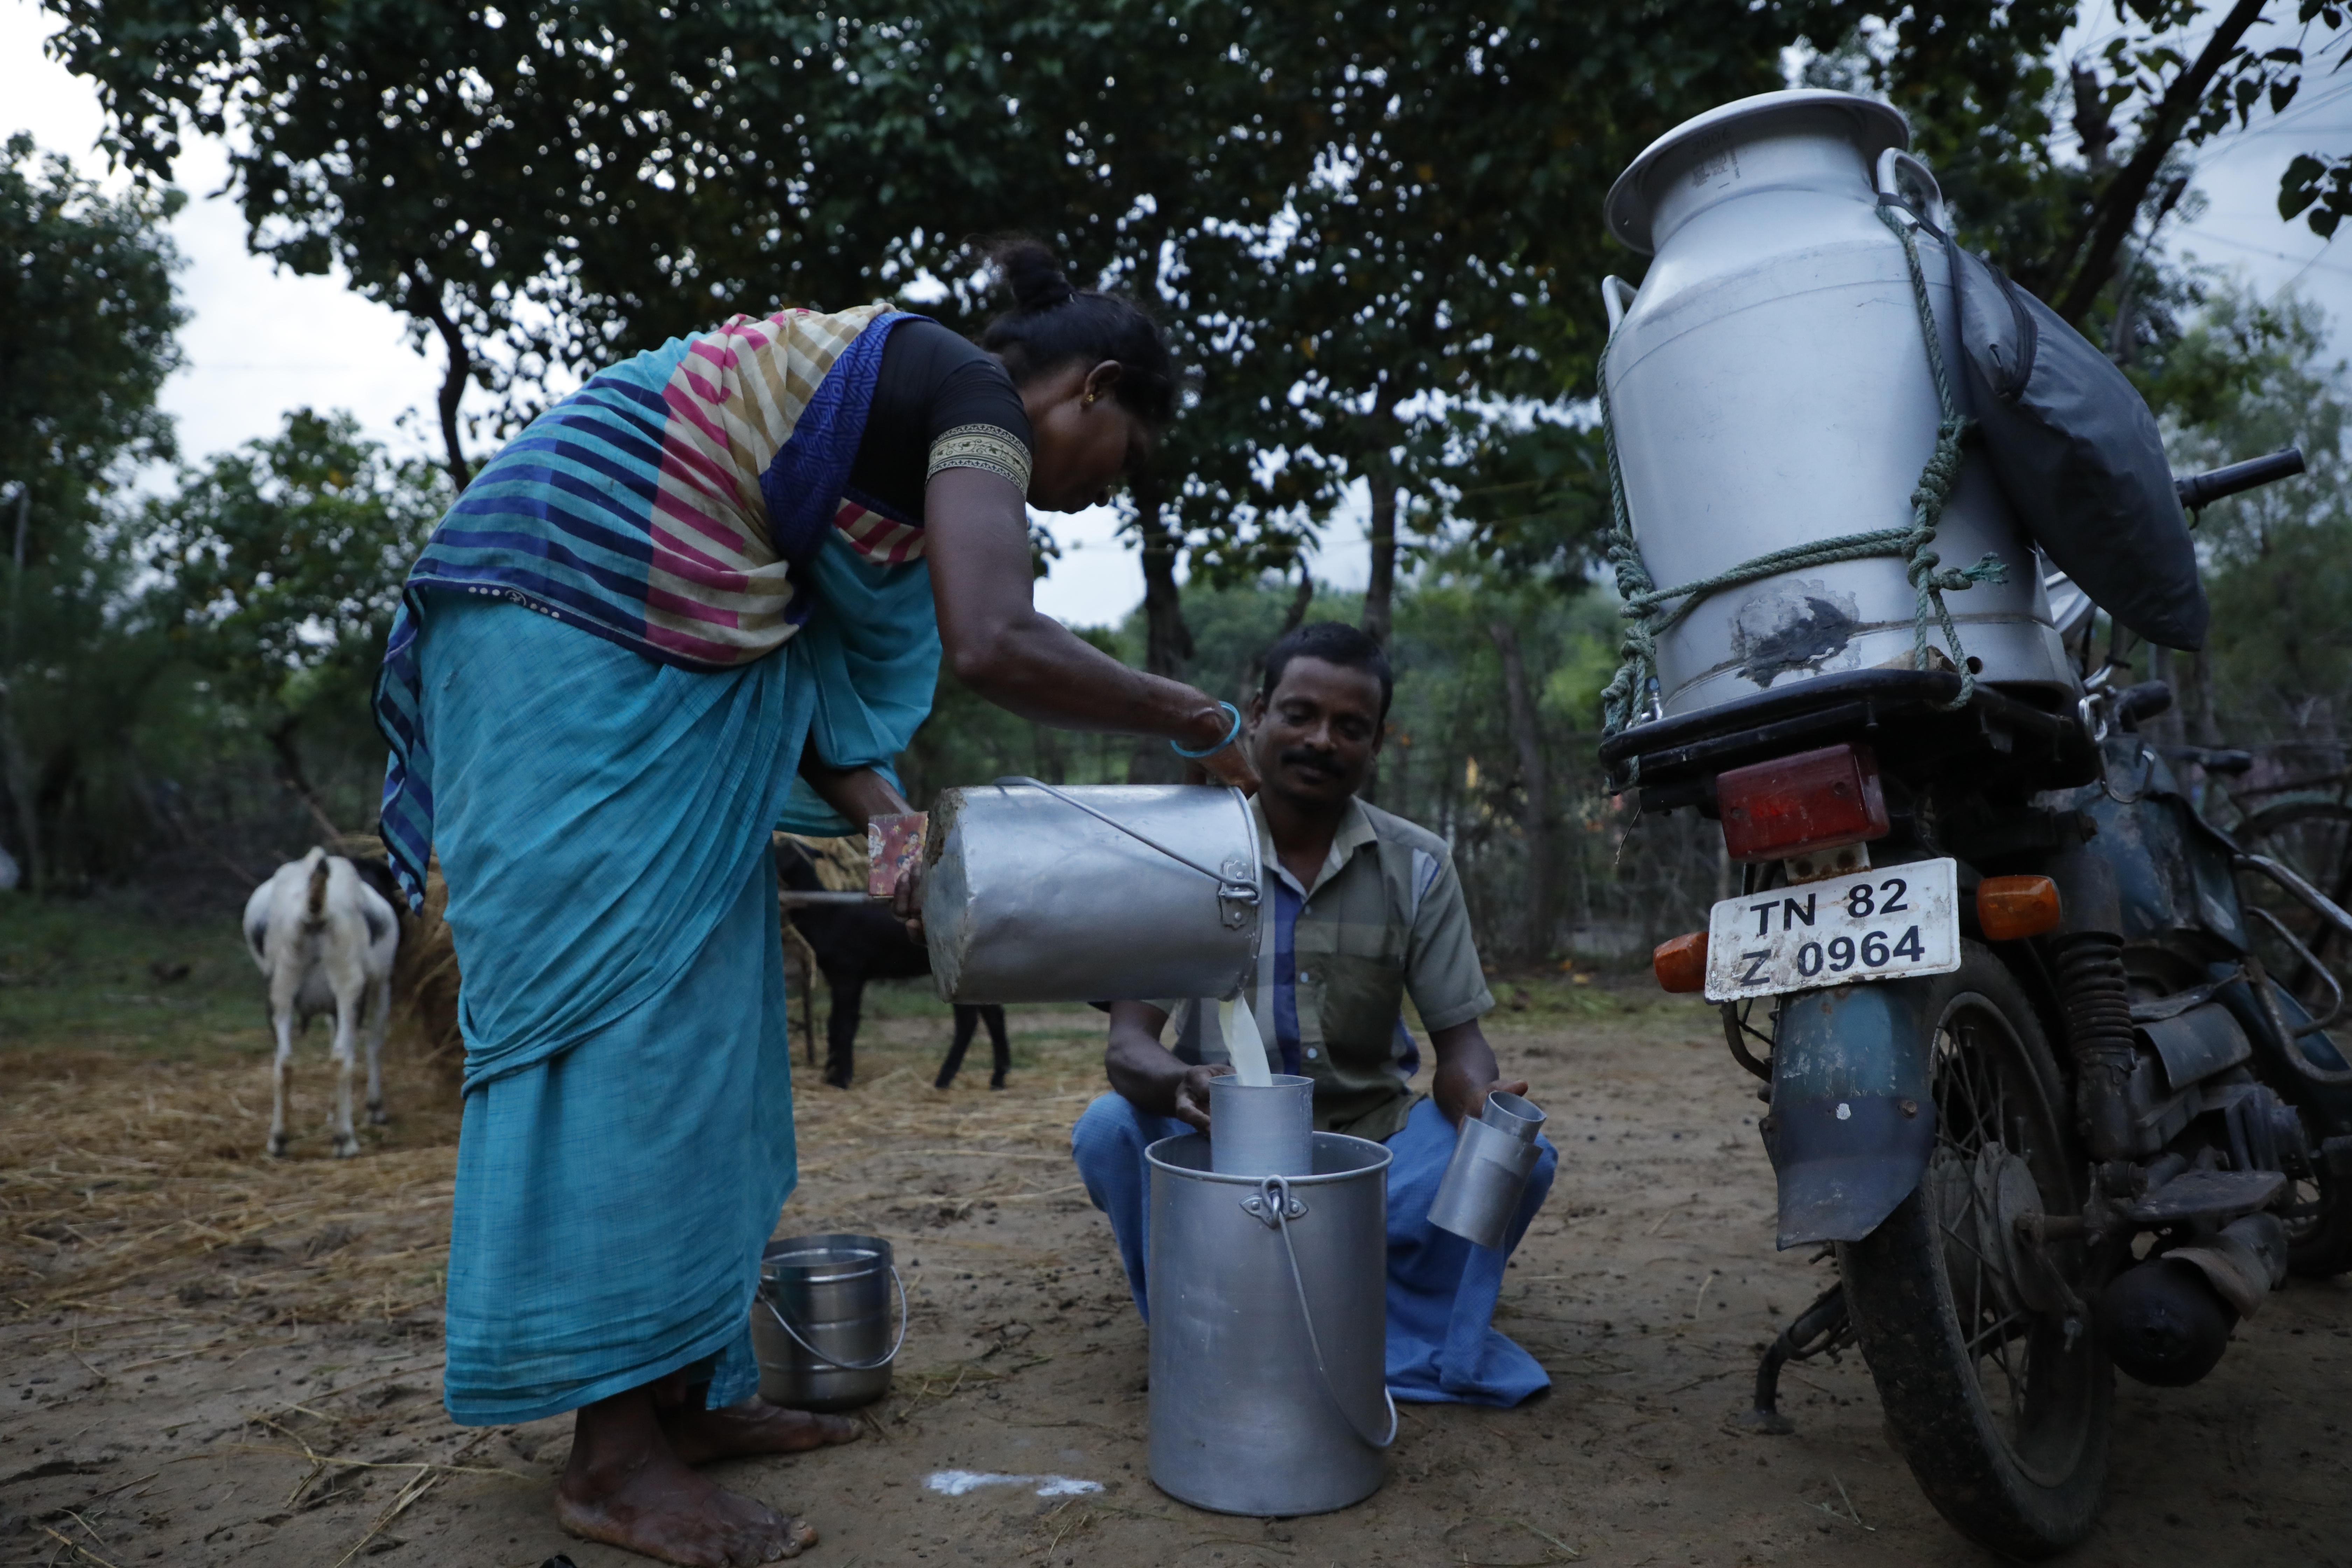 A woman sells milk to a vendor in Tamil Nadu, photo credit to MSSRF